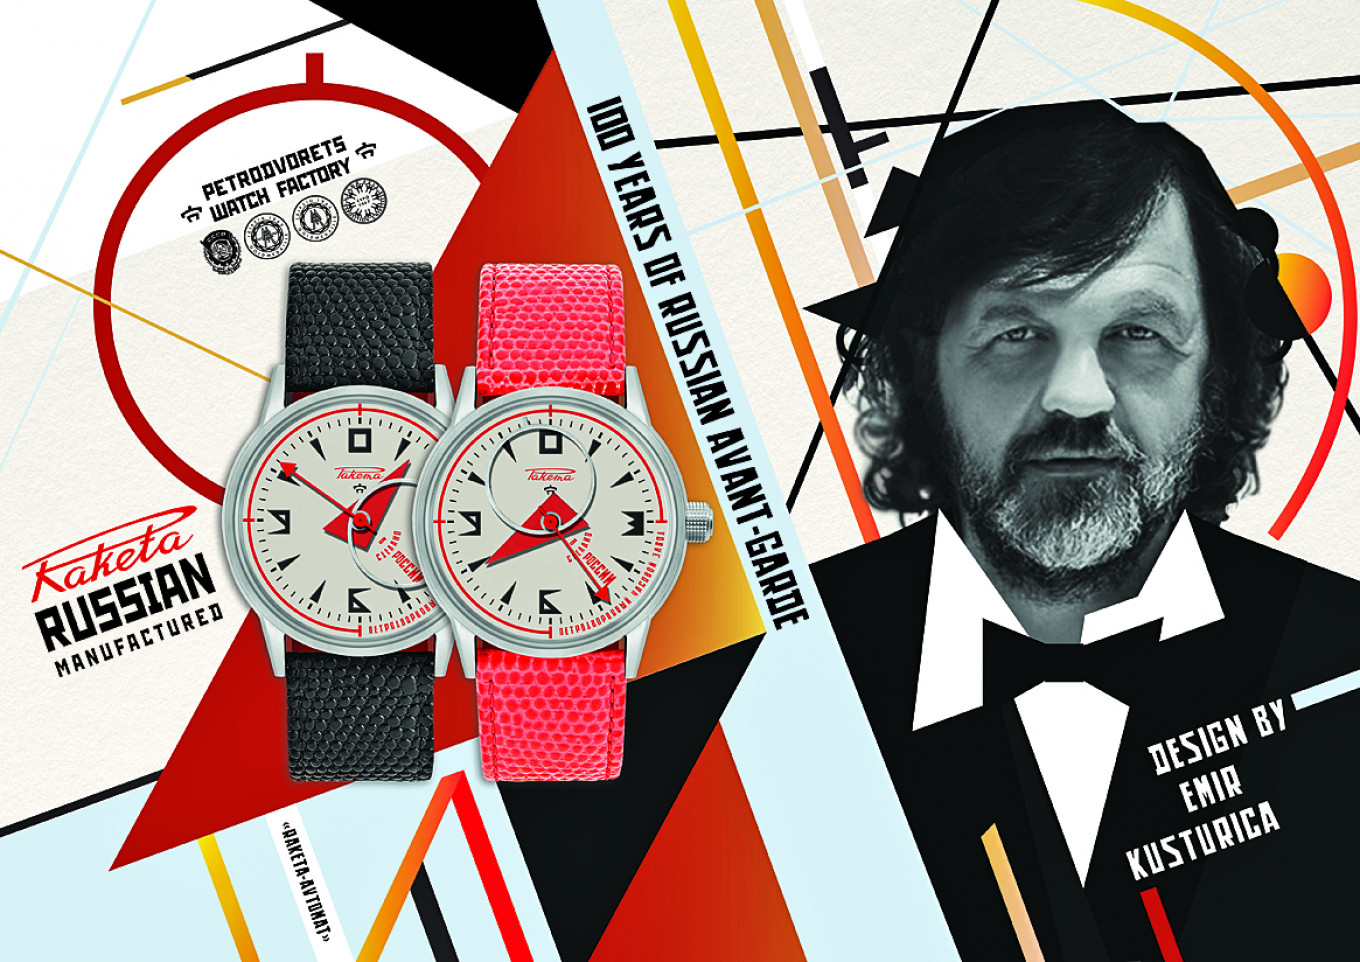 Raketa's marketing strategy has focused on recruiting influential advocates for the brand.  Petrodvorets Watch Factory